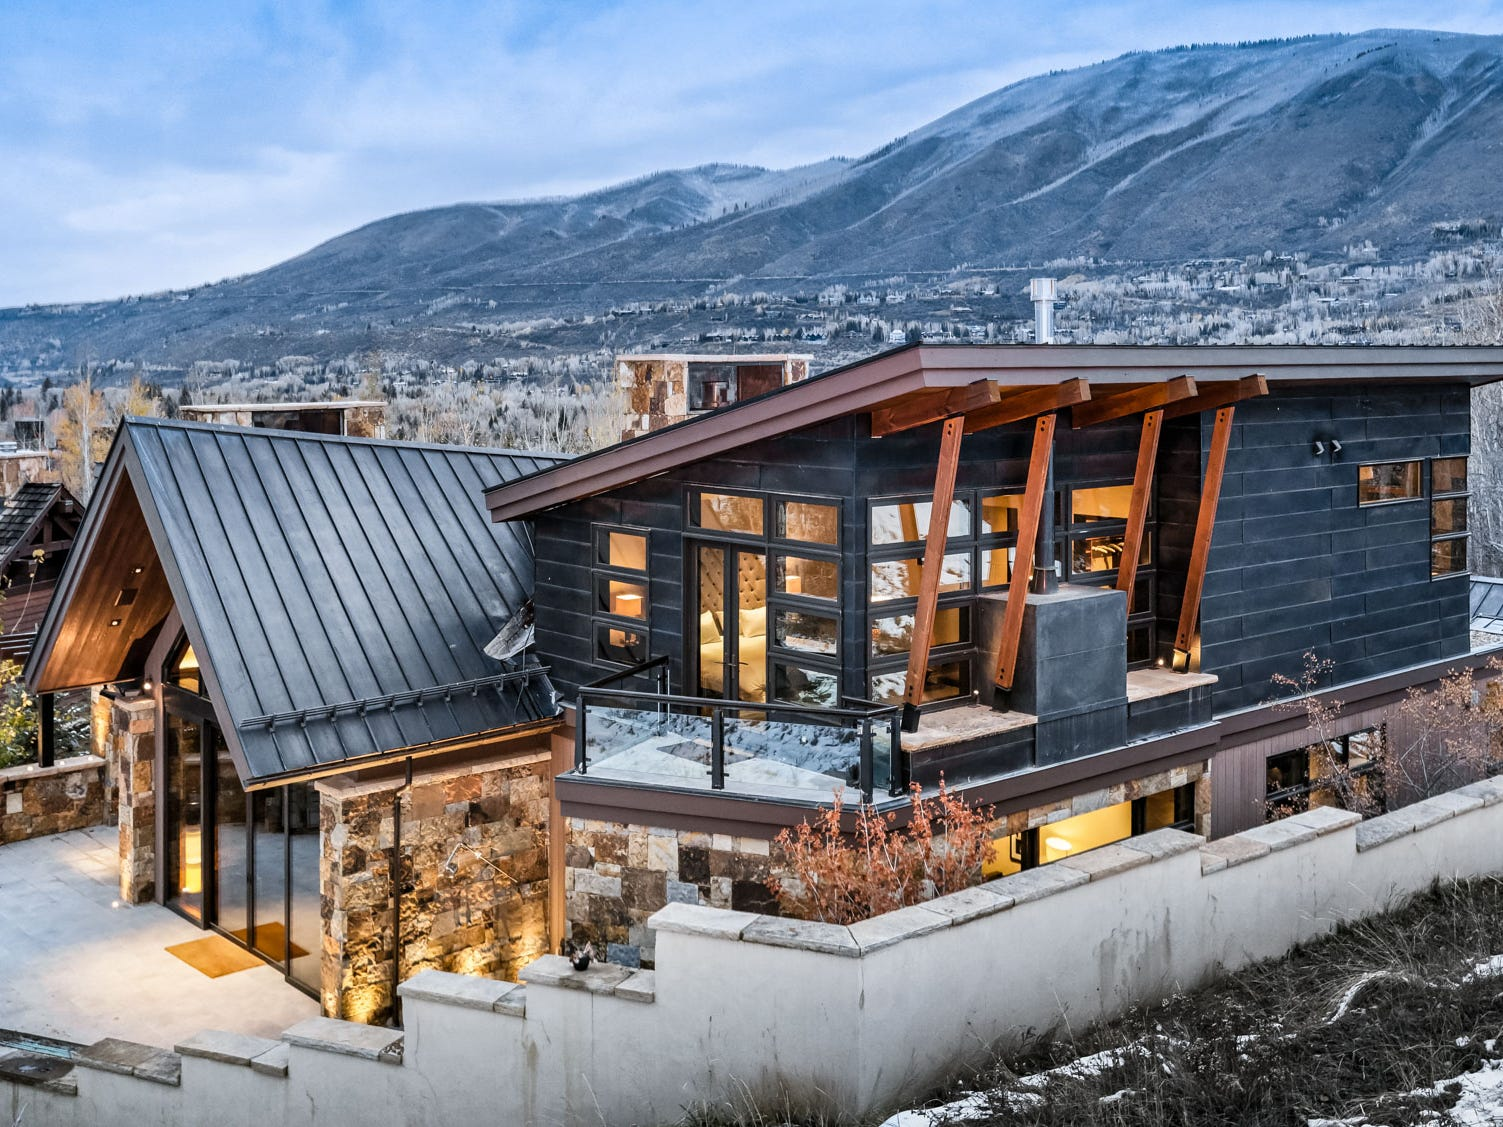 This seven-bedroom property in Aspen, Colorado, sleeps 18 and rents for $10,000 - $30,000 a night.